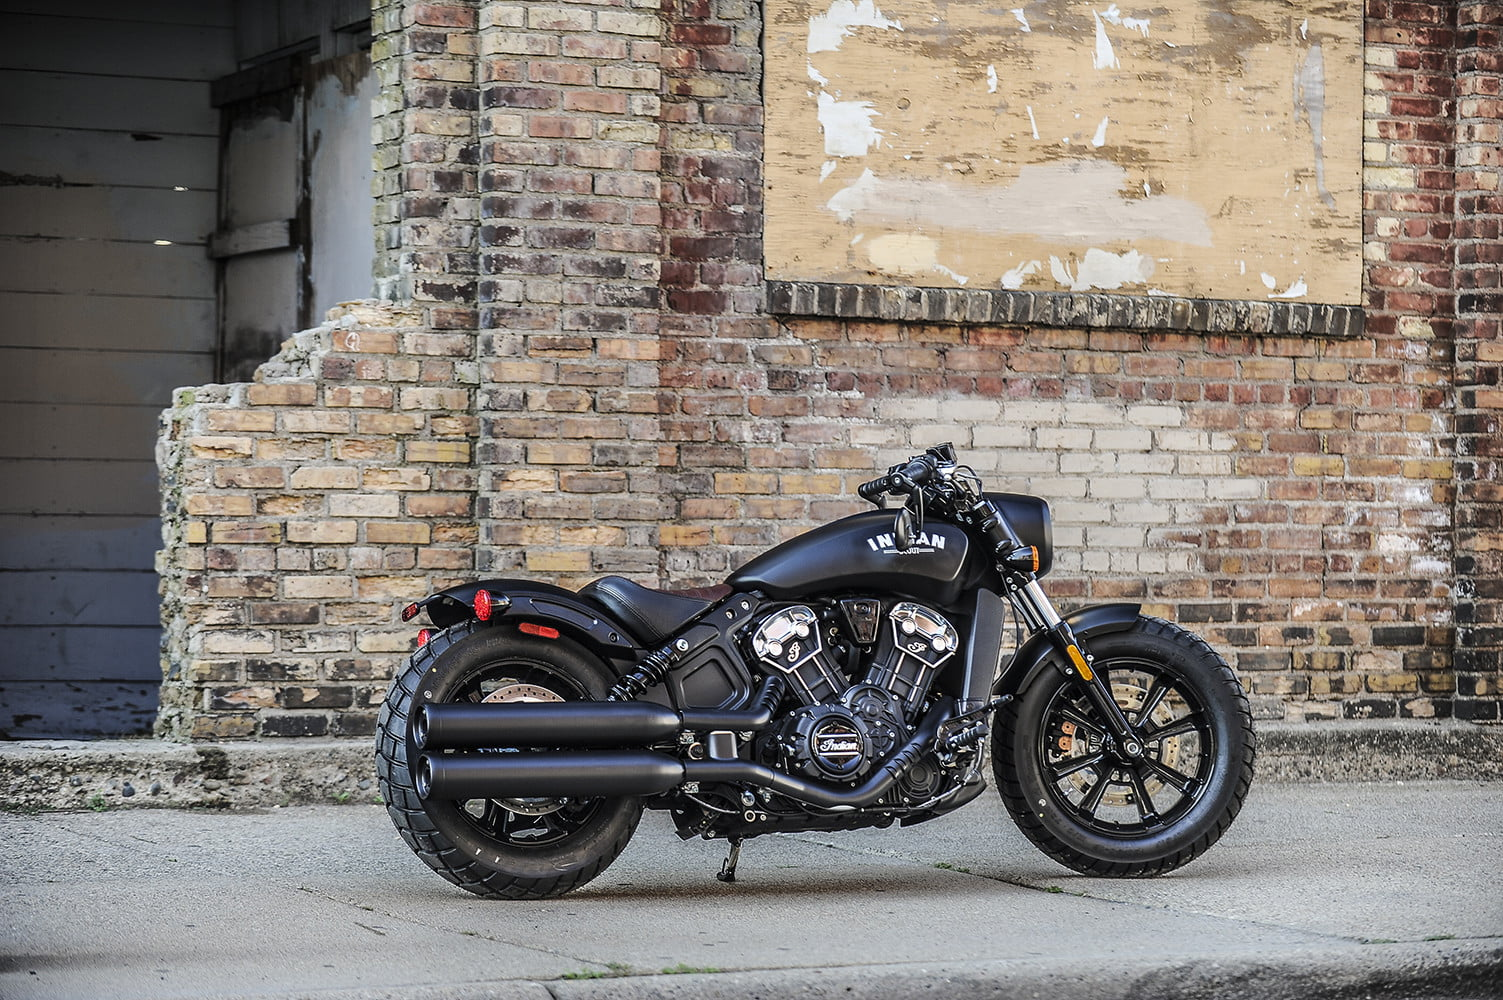 2018 Indian Motorcycles | Full Lineup Specs, Prices, Pictures, and News |  Digital Trends